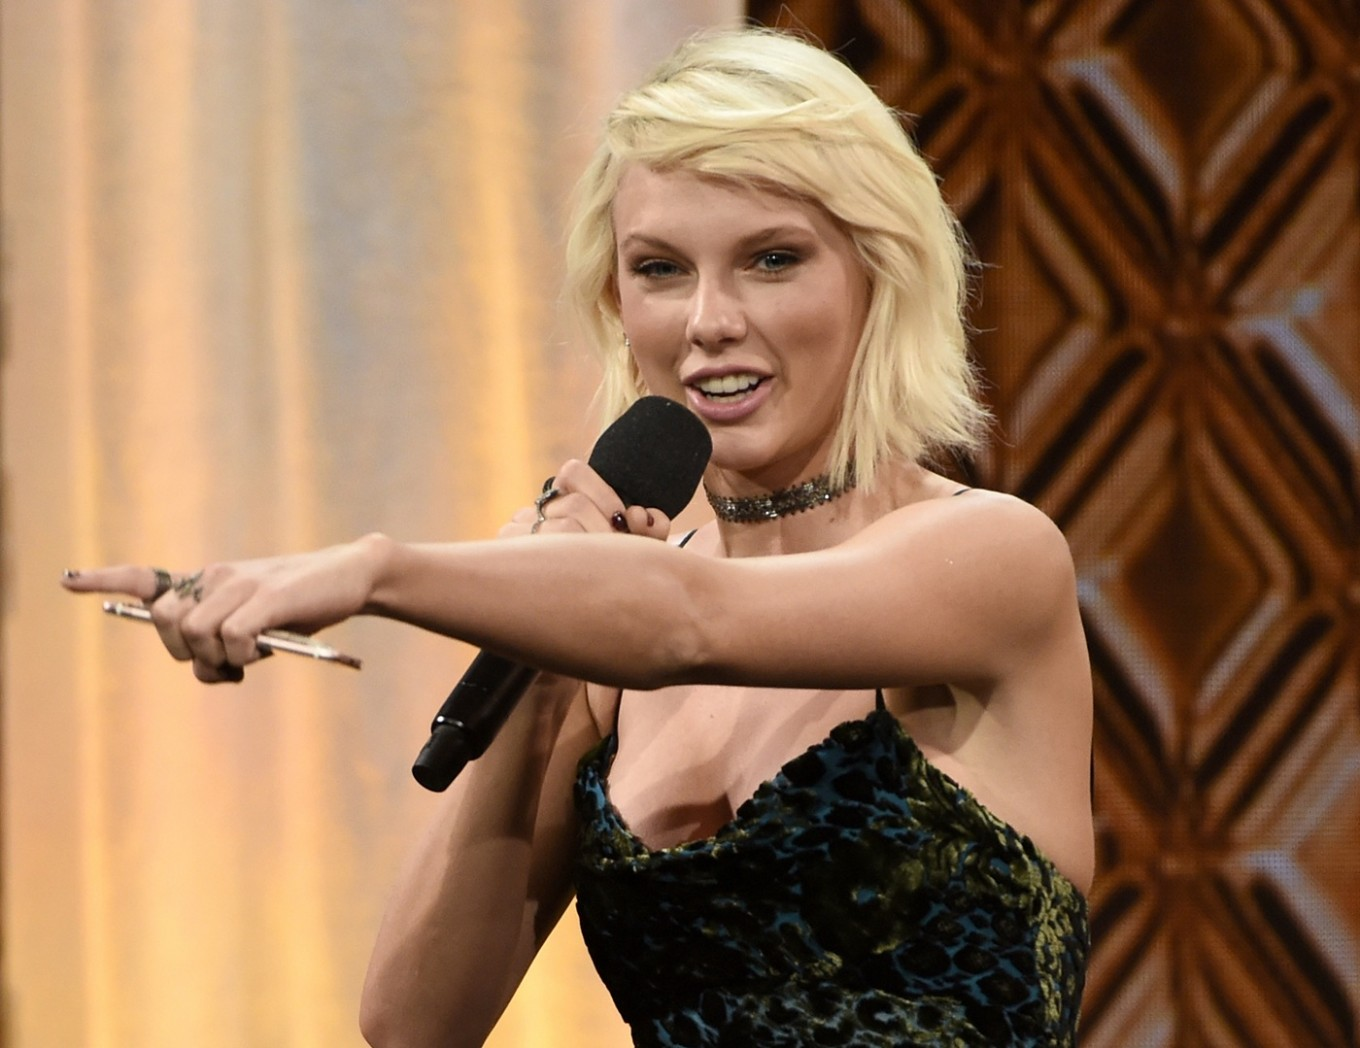 Taylor Swift tops Forbes' list of highest-paid celebs